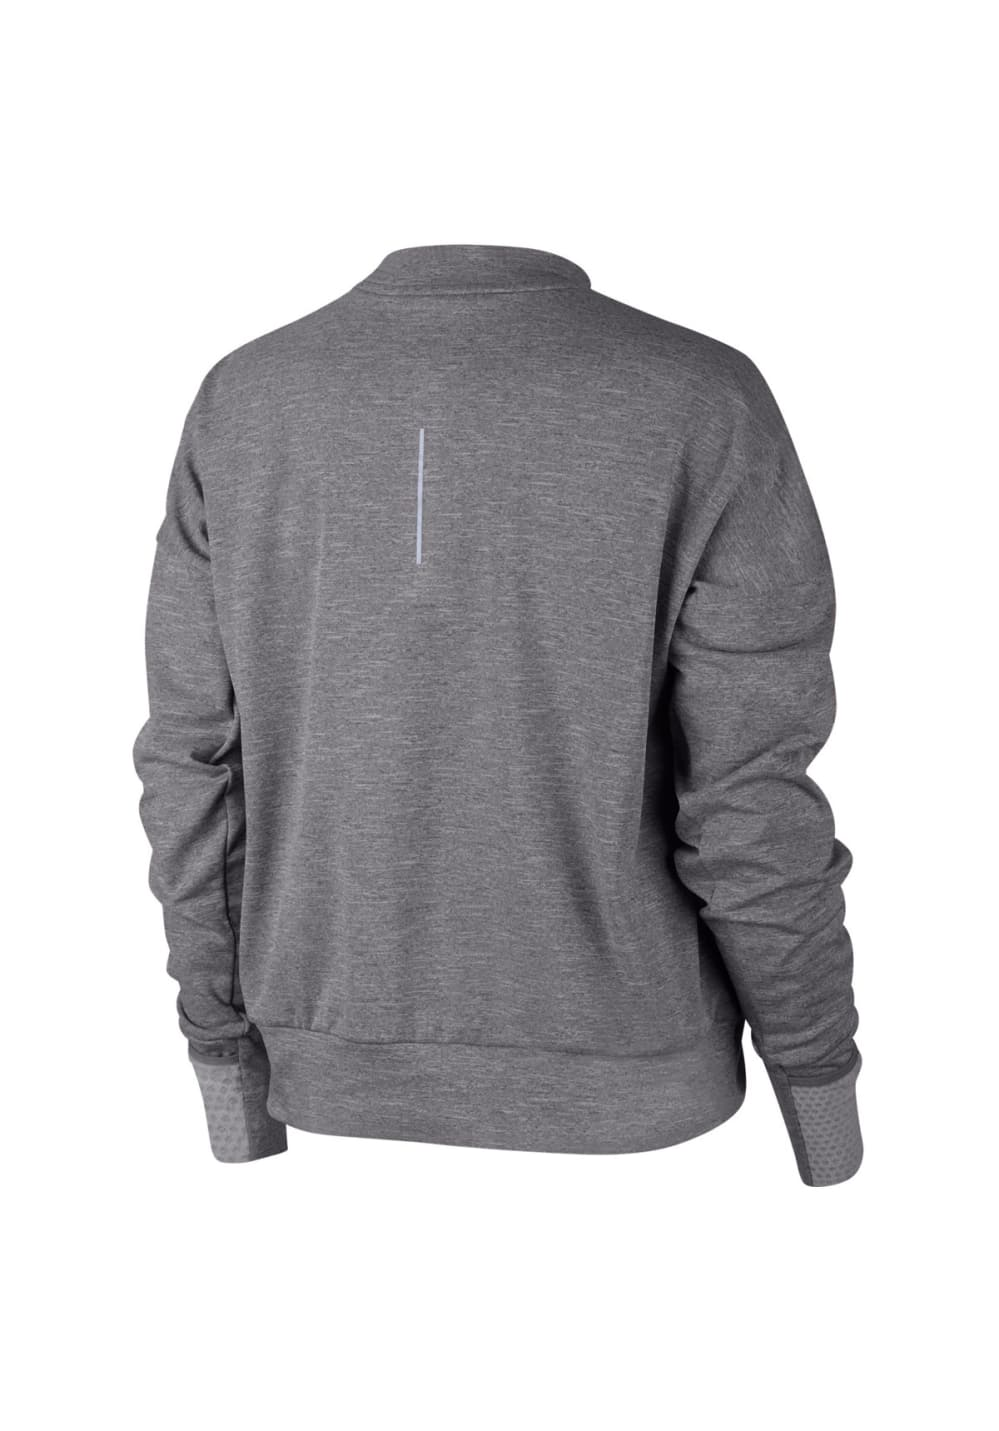 low priced d7fee 420ee ... Nike Therma Sphere Element Top Crew 2.0 - Sudaderas para Mujer - Gris.  Volver. 1 2. Previous